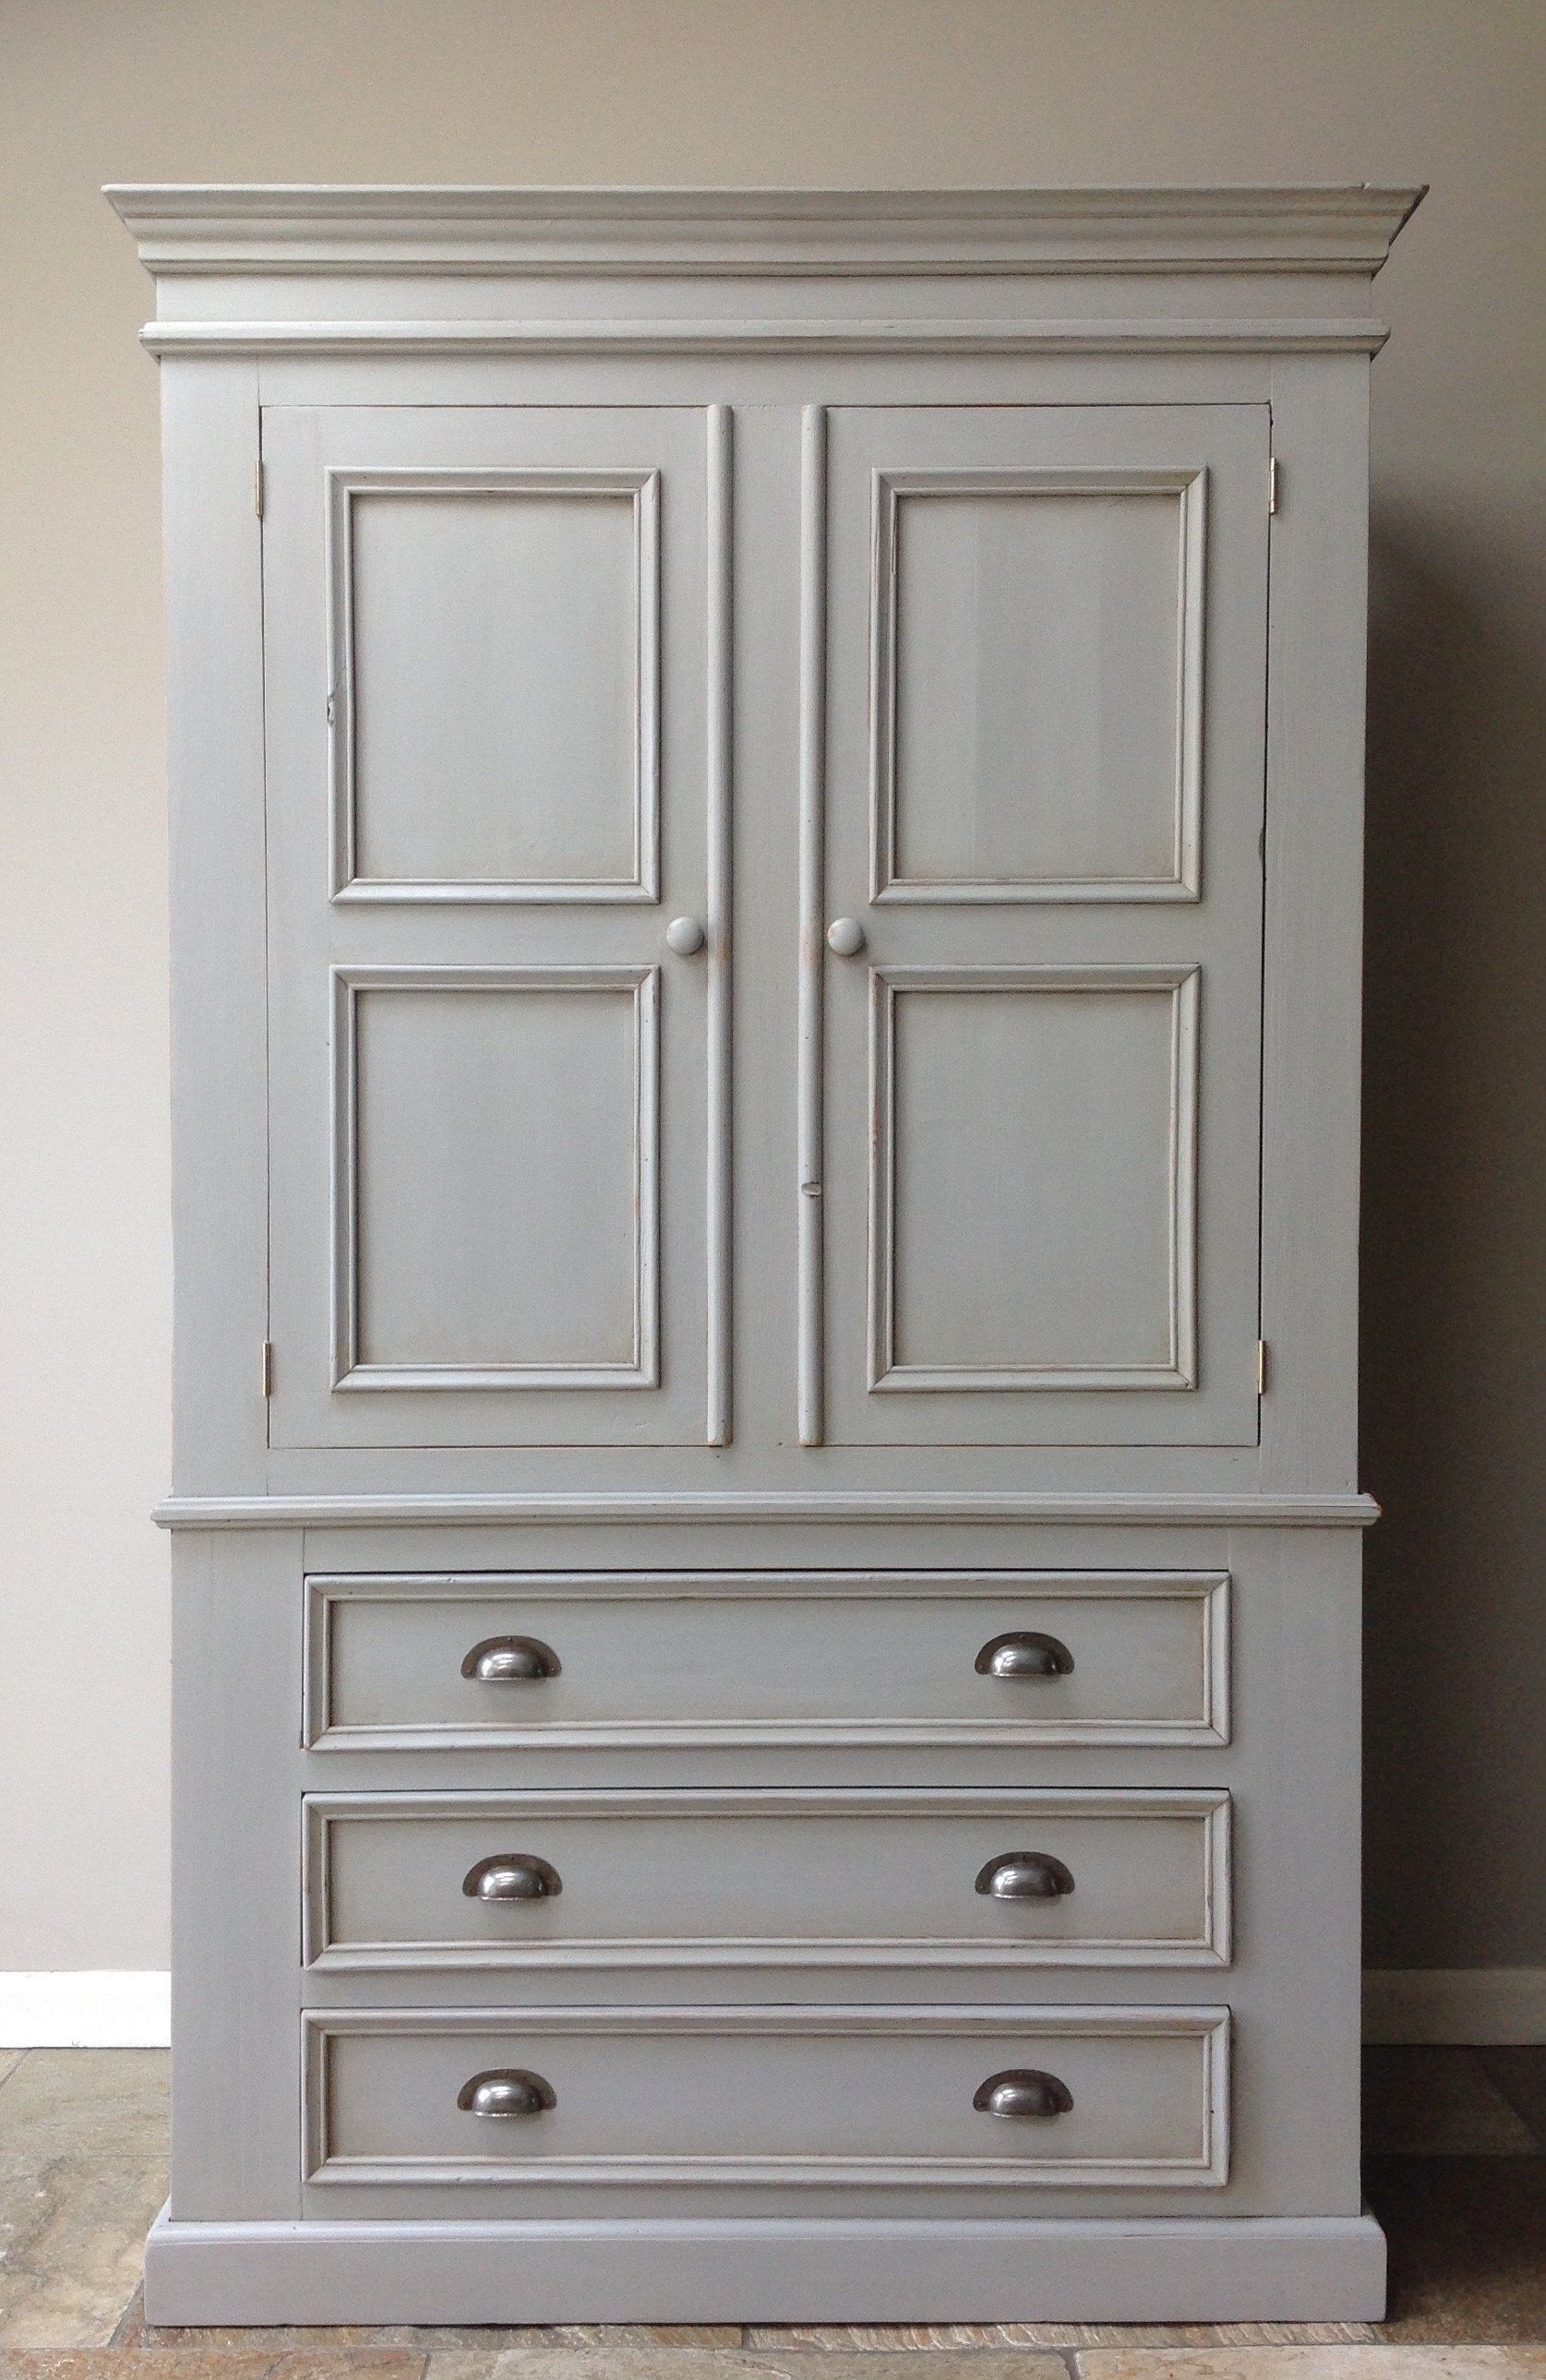 Vintage Farmhouse Country Rustic Painted Grey Wardrobe Linen Press Solid Pine Painted Wardrobe Grey Painted Furniture Annie Sloan Annie Sloan Painted Furniture